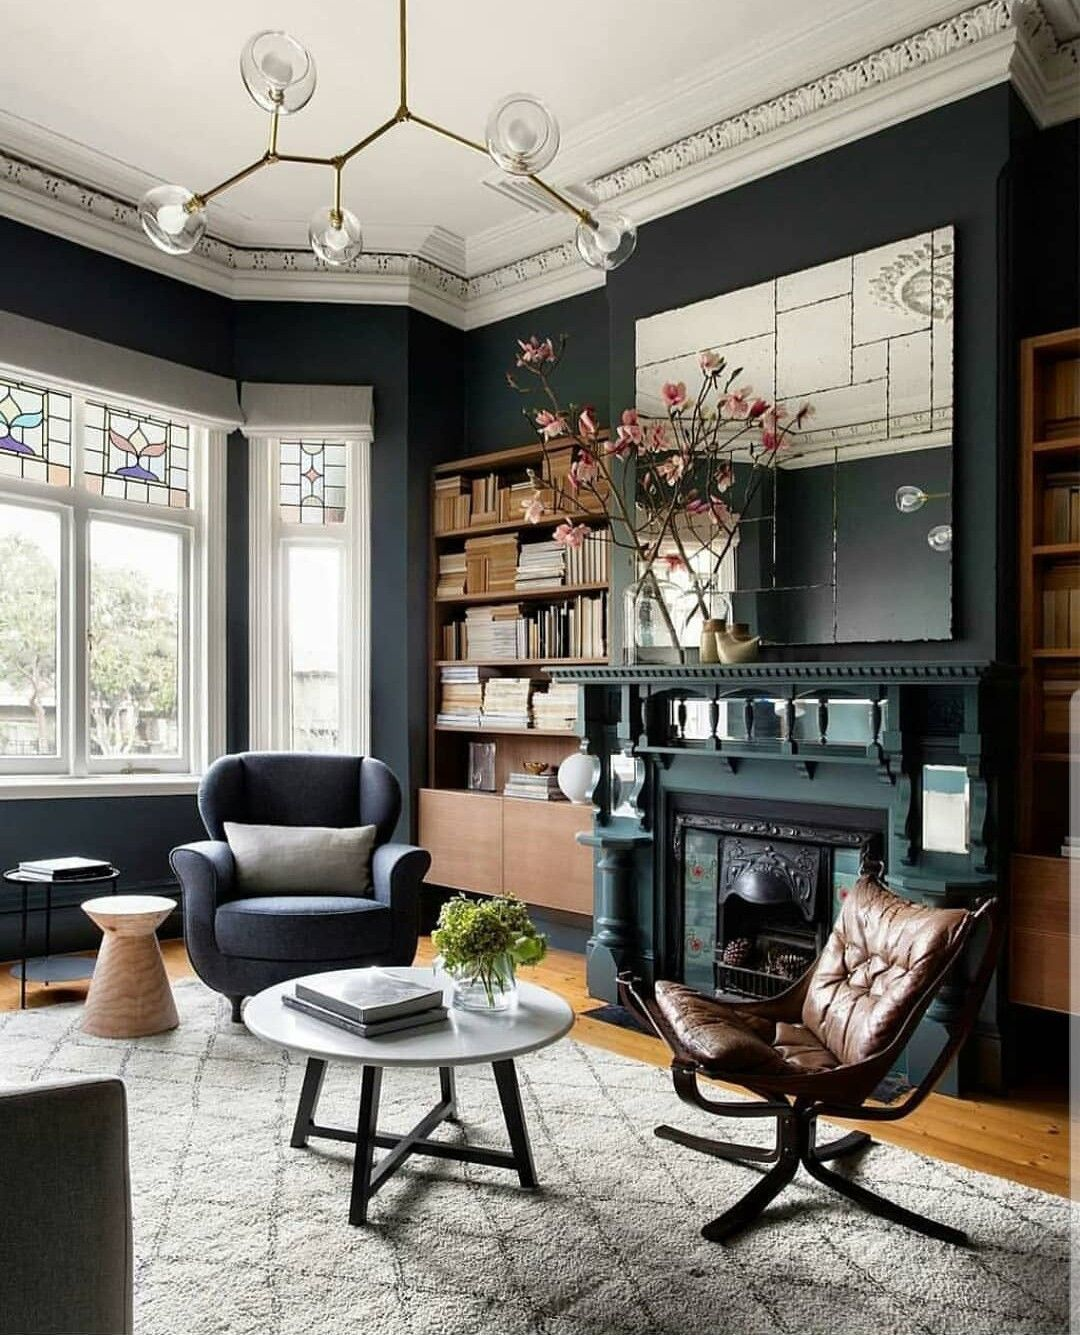 Living room library green walls stained glass fireplace